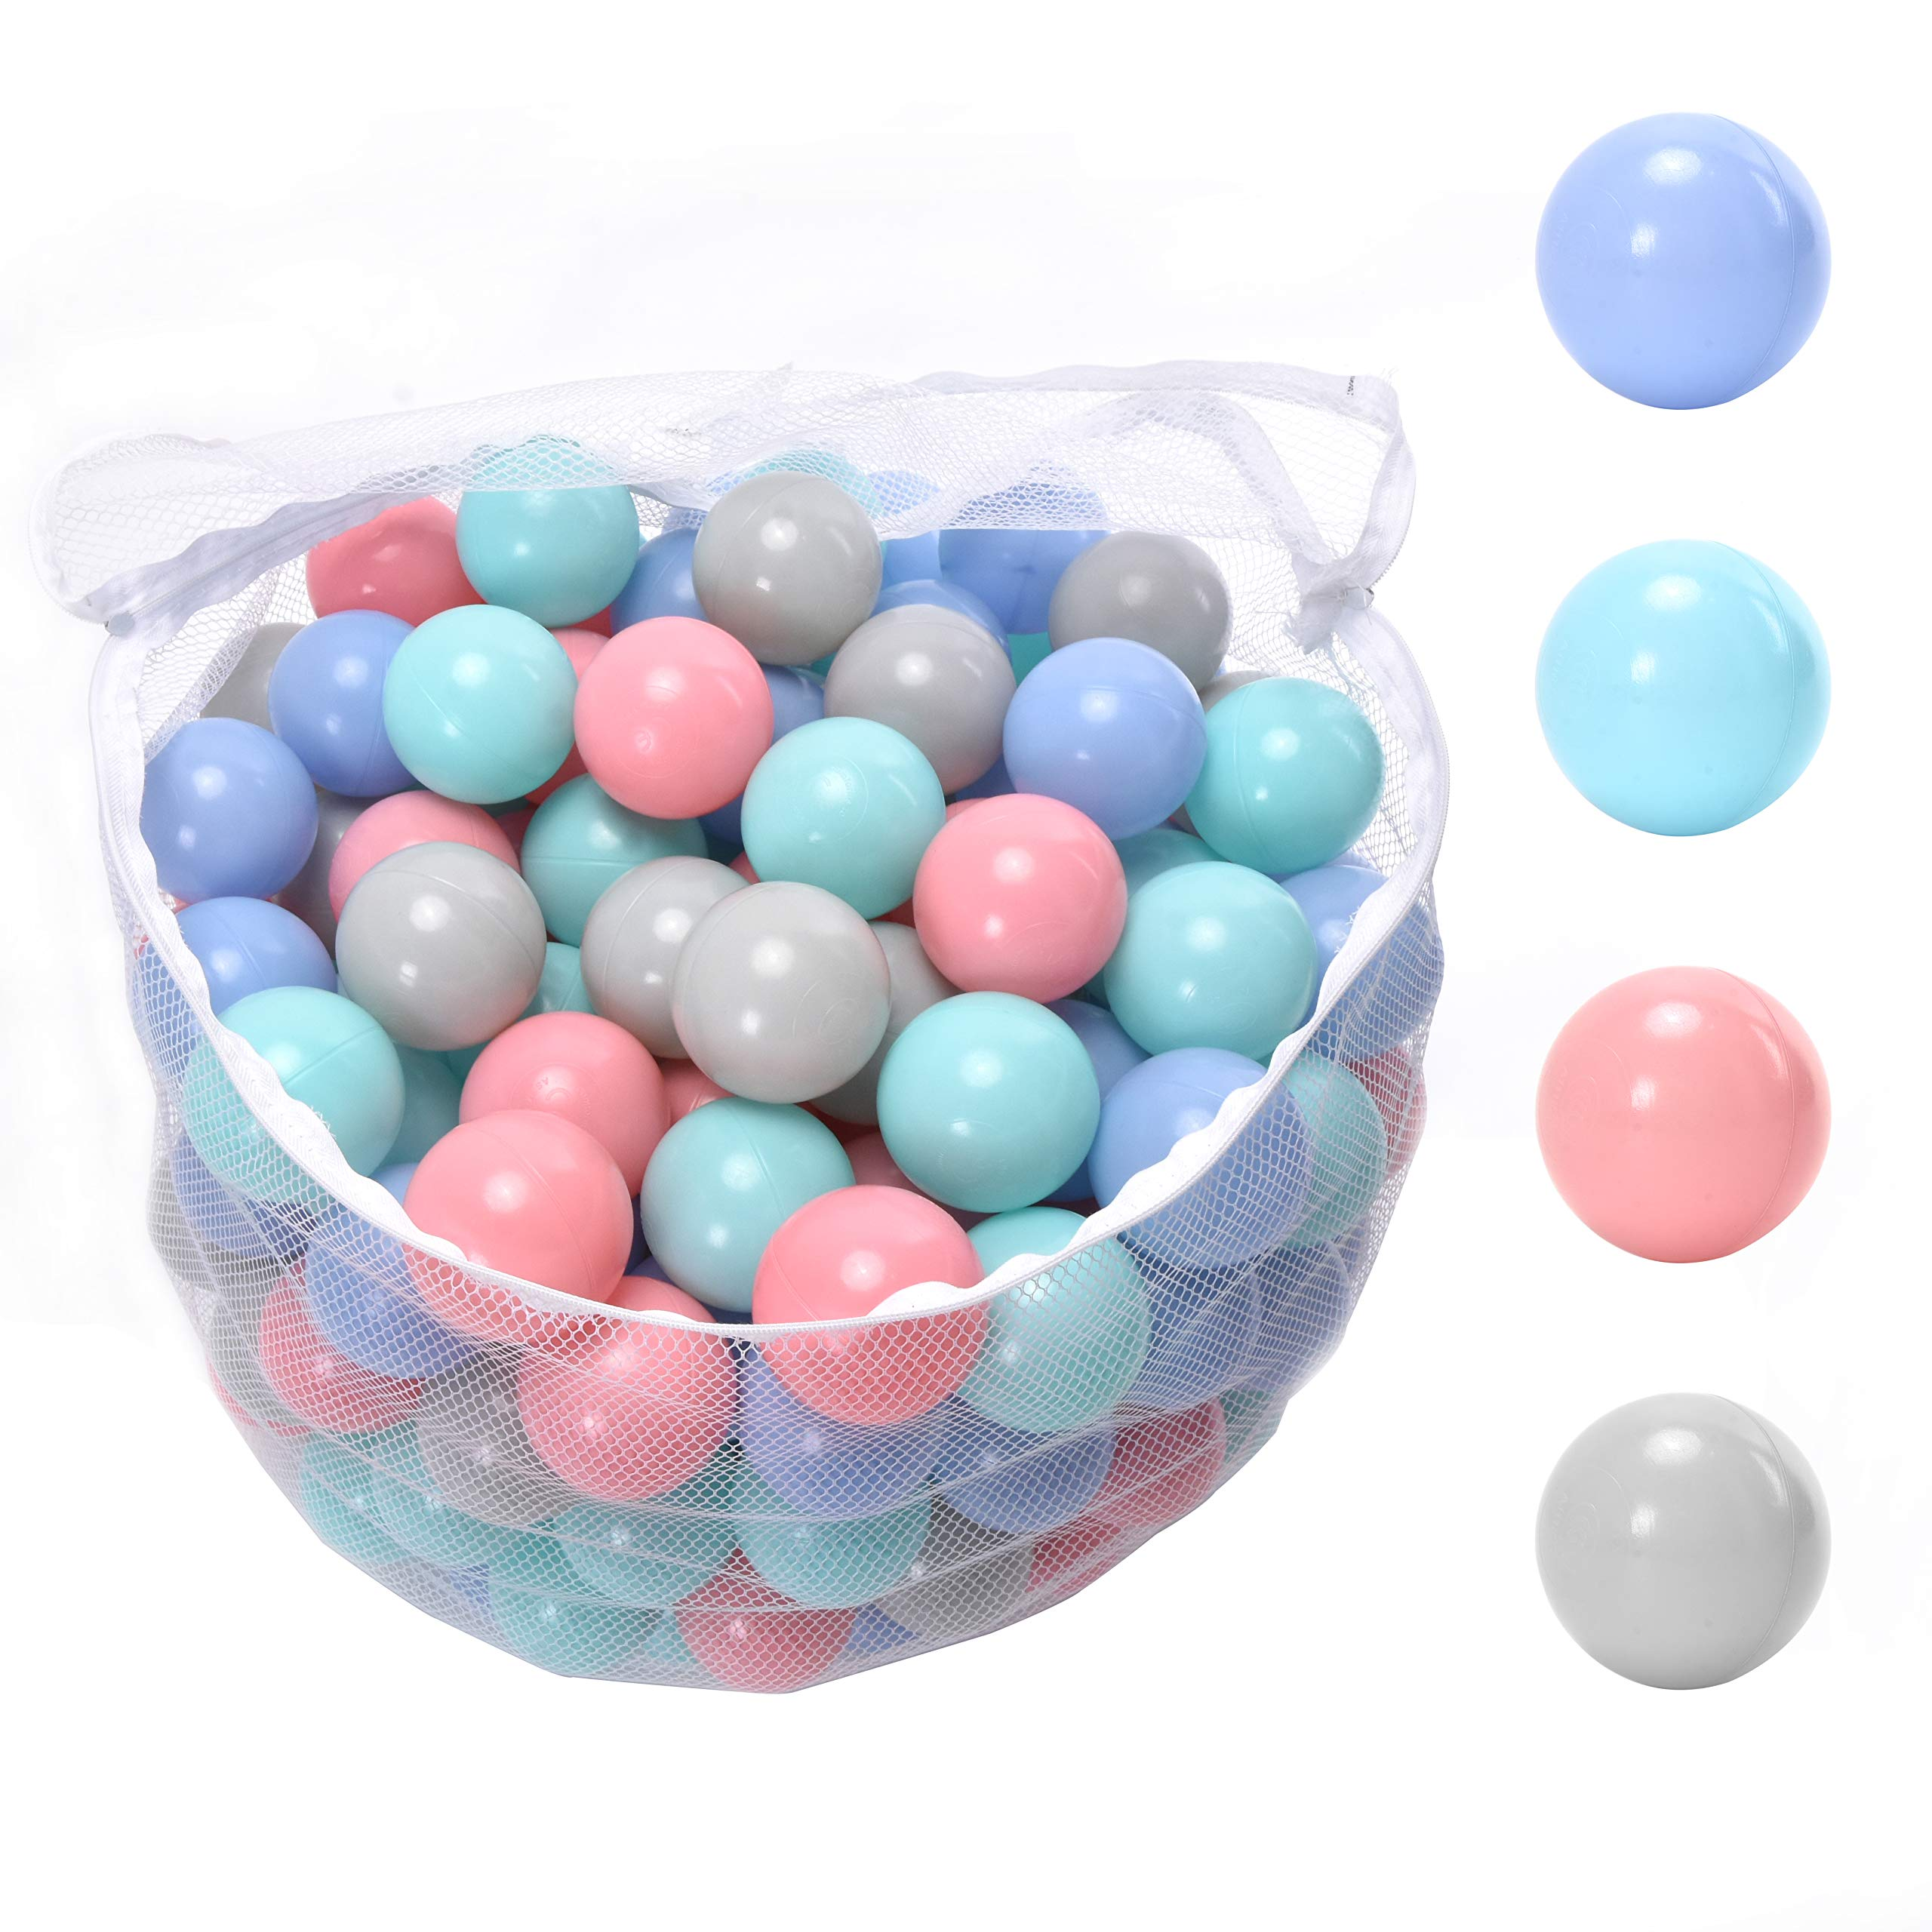 WonderPlay Kids' Ball Pits, Pack of 200 Phthalate Free BPA Free Crush Proof Plastic Colorful Ball,with Reusable and Durable Storage Mesh Bag with Zipper